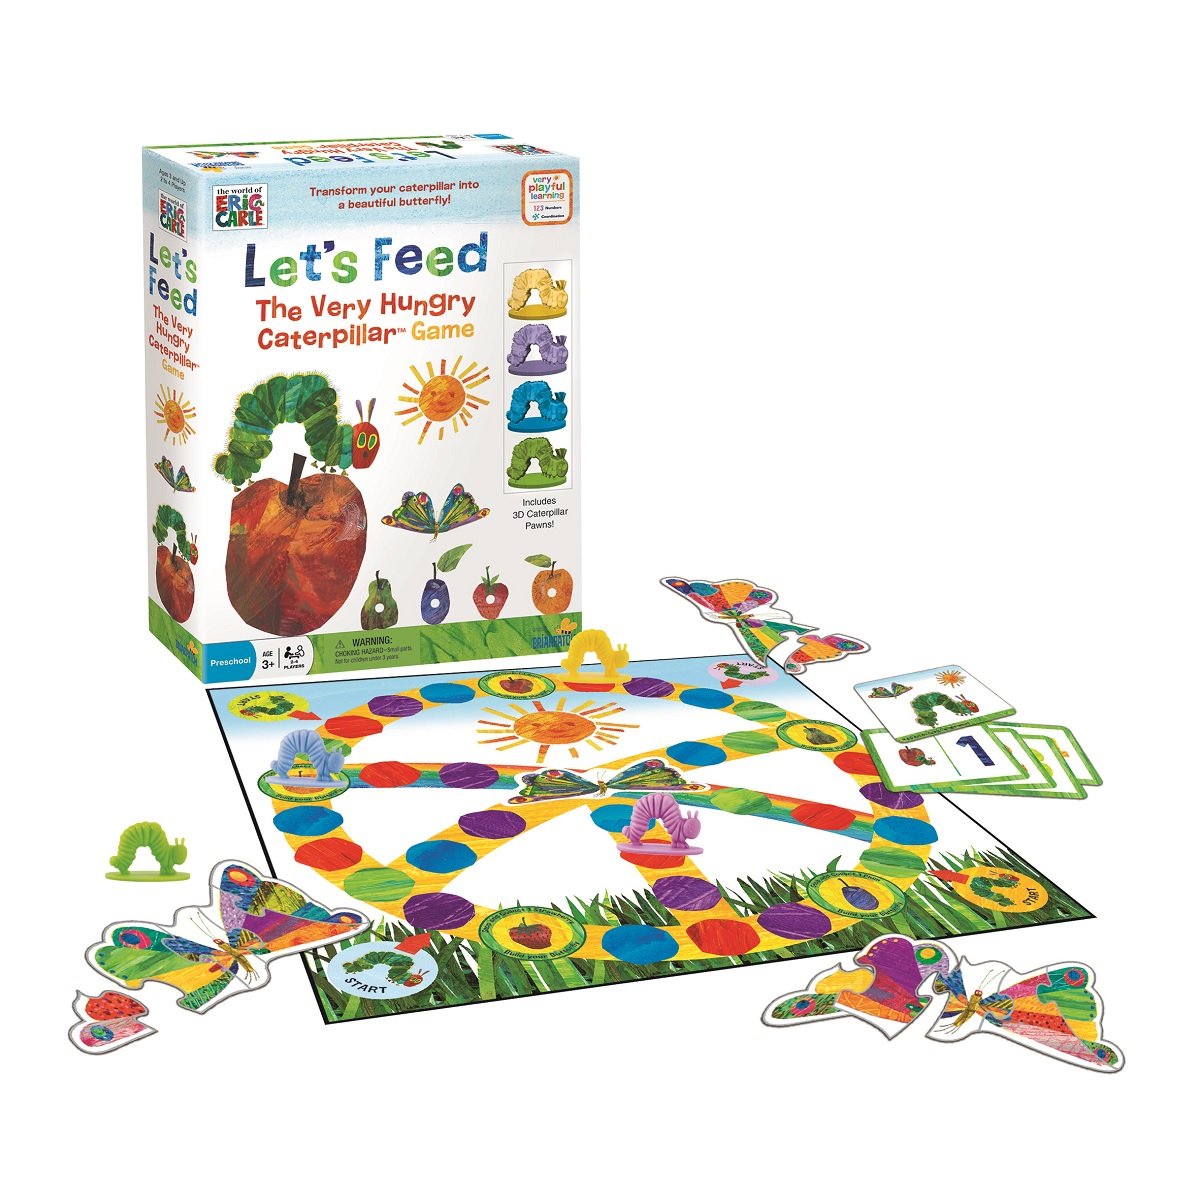 Let's Feed The Very Hungry Caterpillar Game by BRIARPATCH